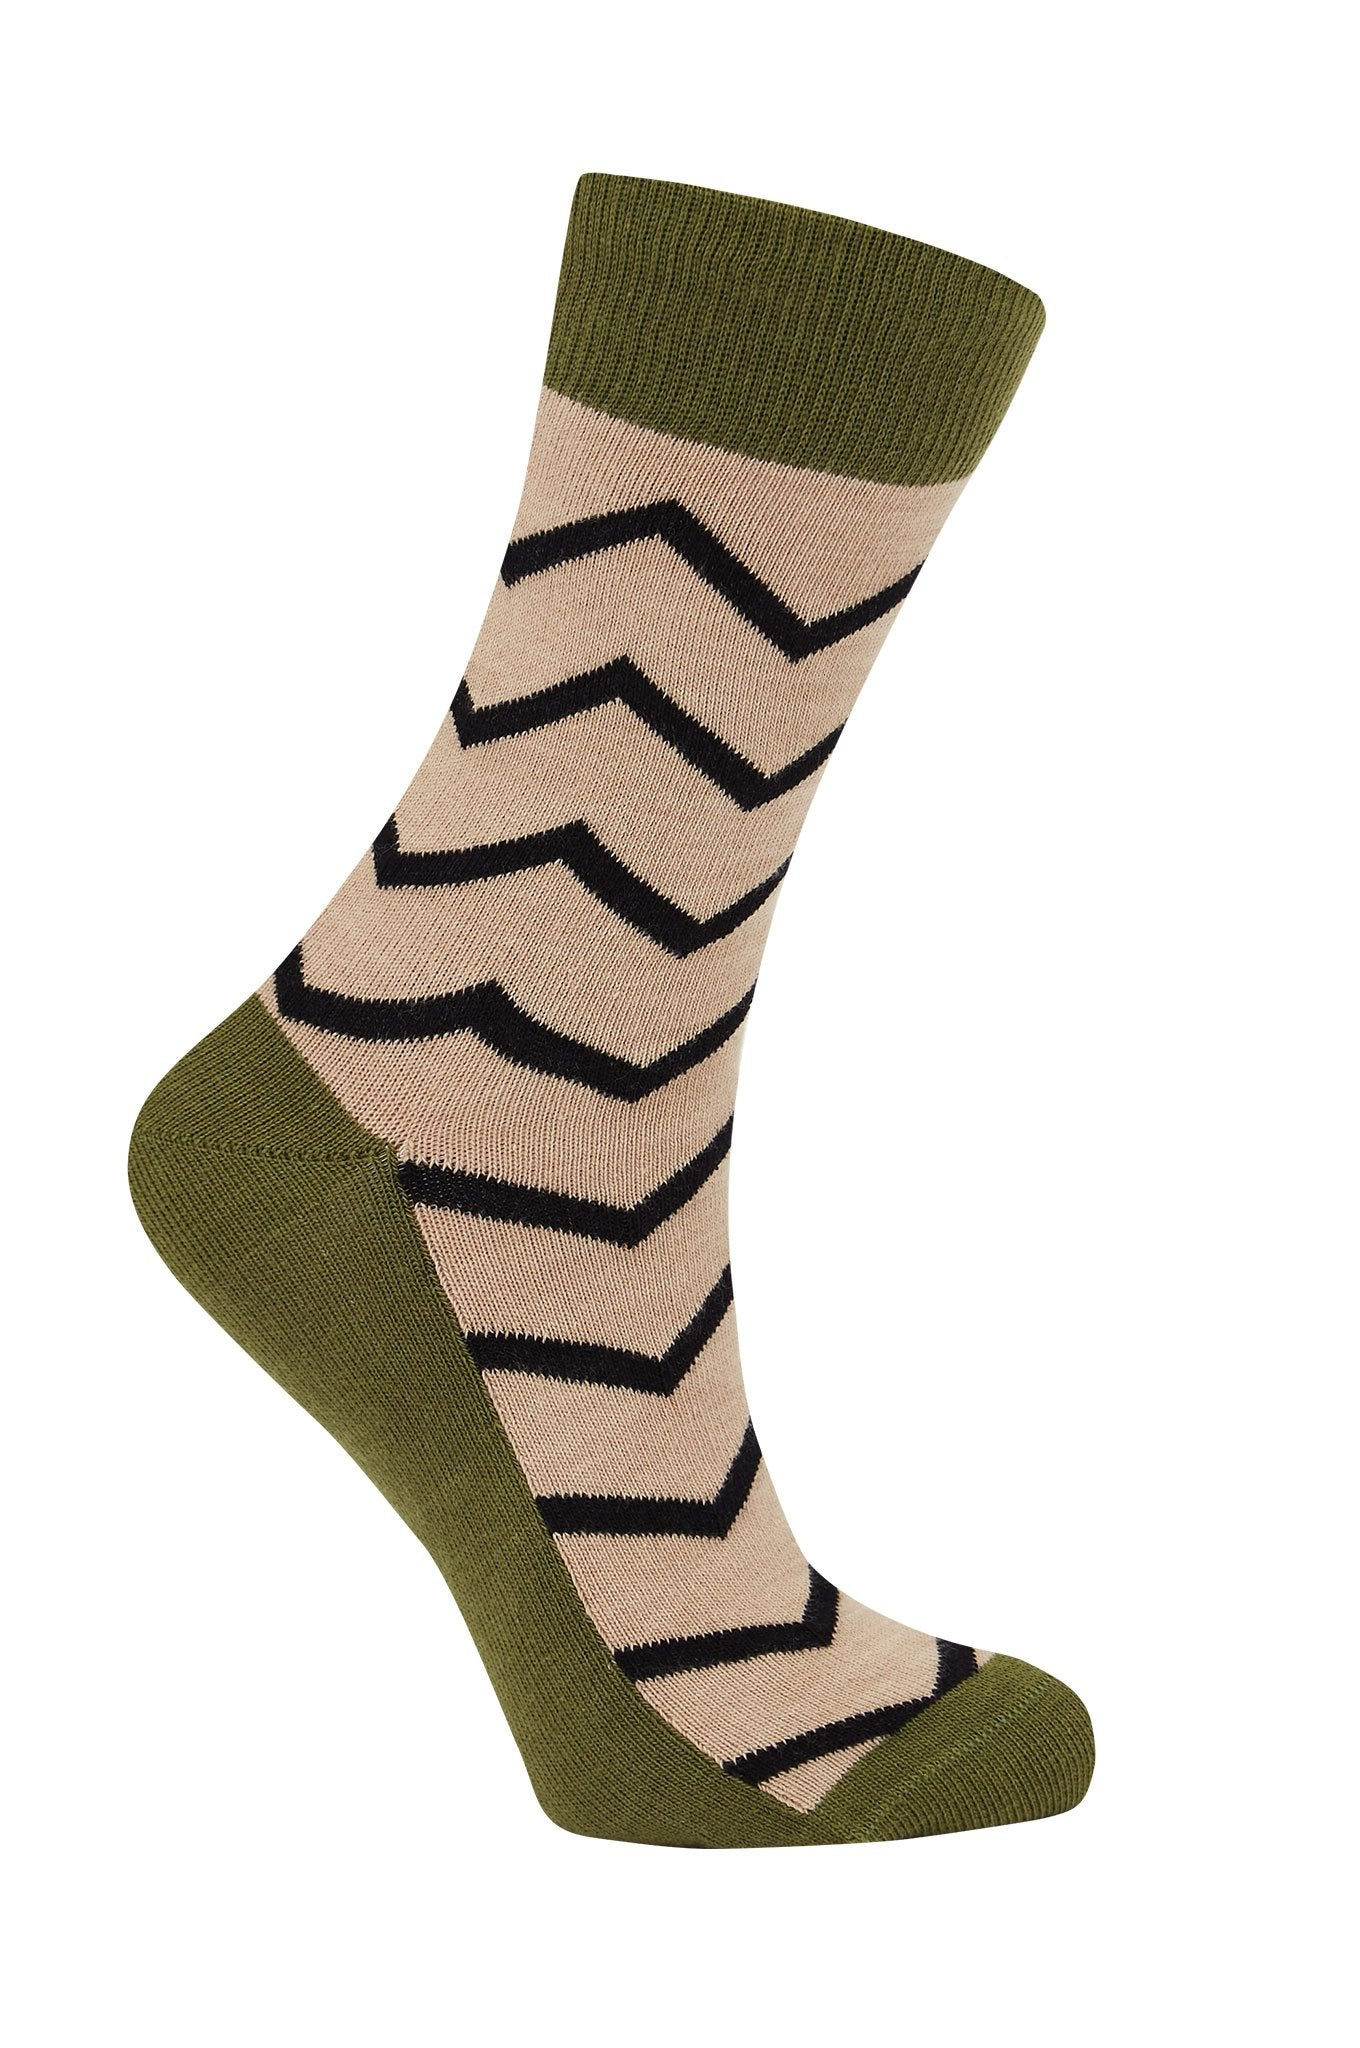 SAPUT Sand - GOTS Organic Cotton Socks